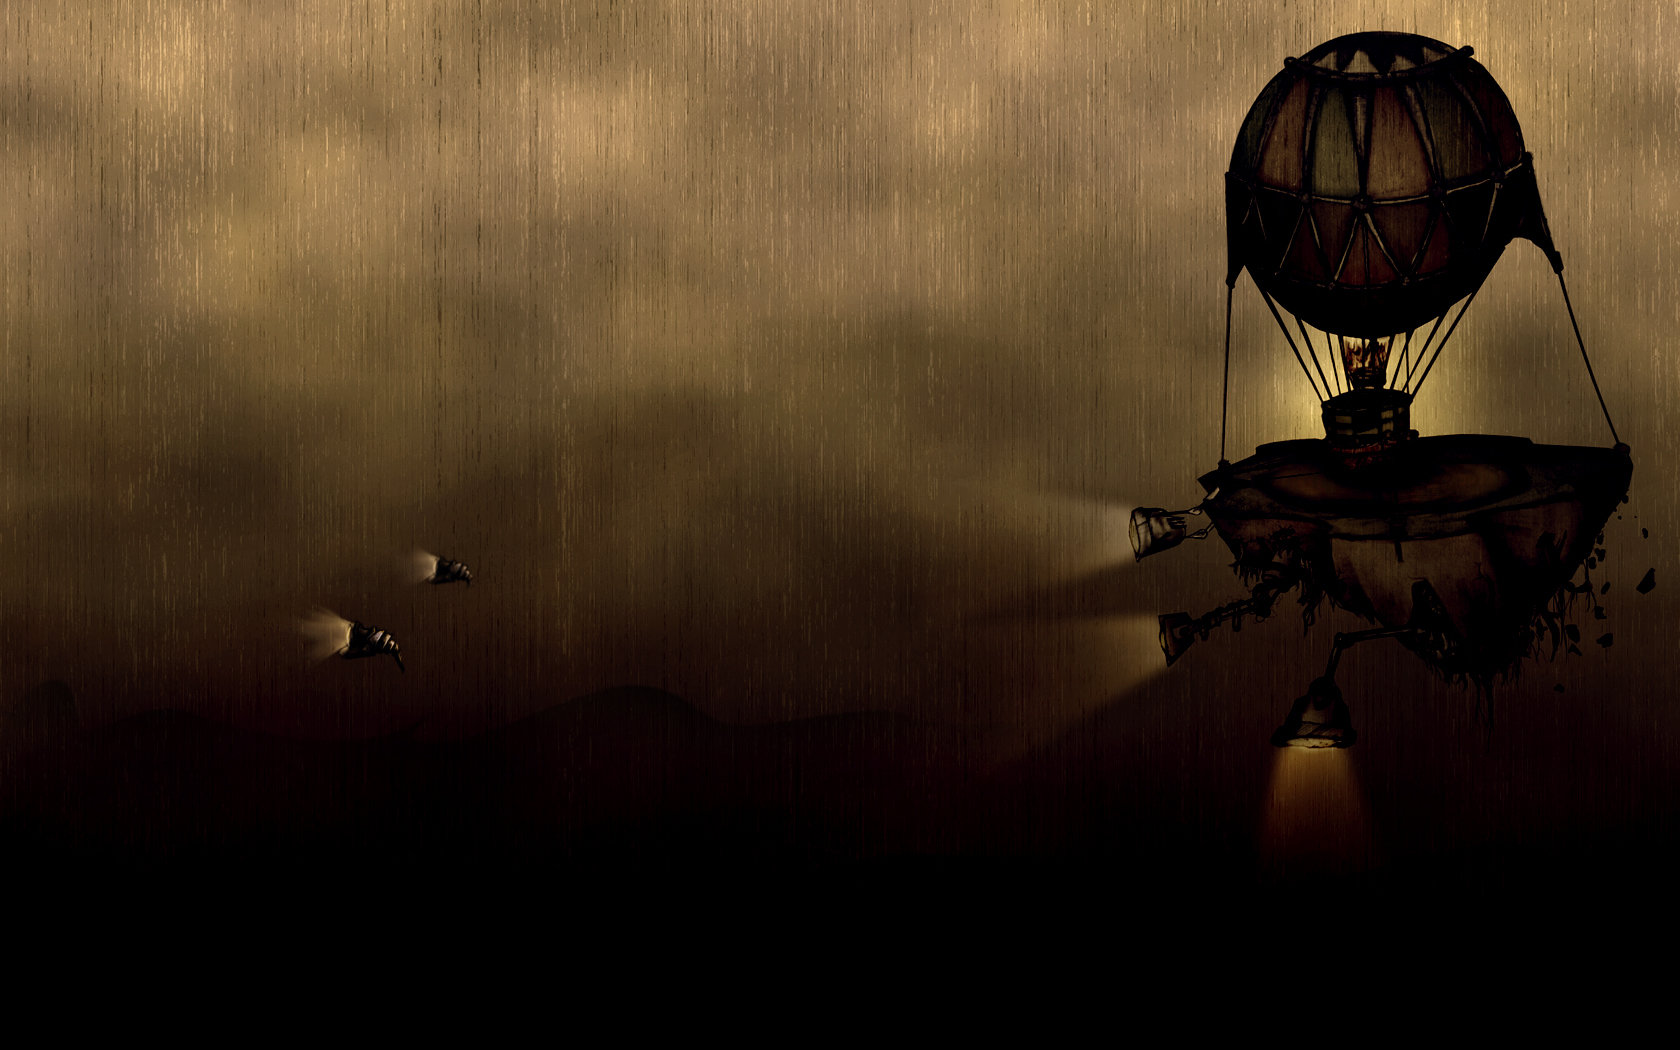 Free download Steampunk background ID:10578 hd 1680x1050 for PC